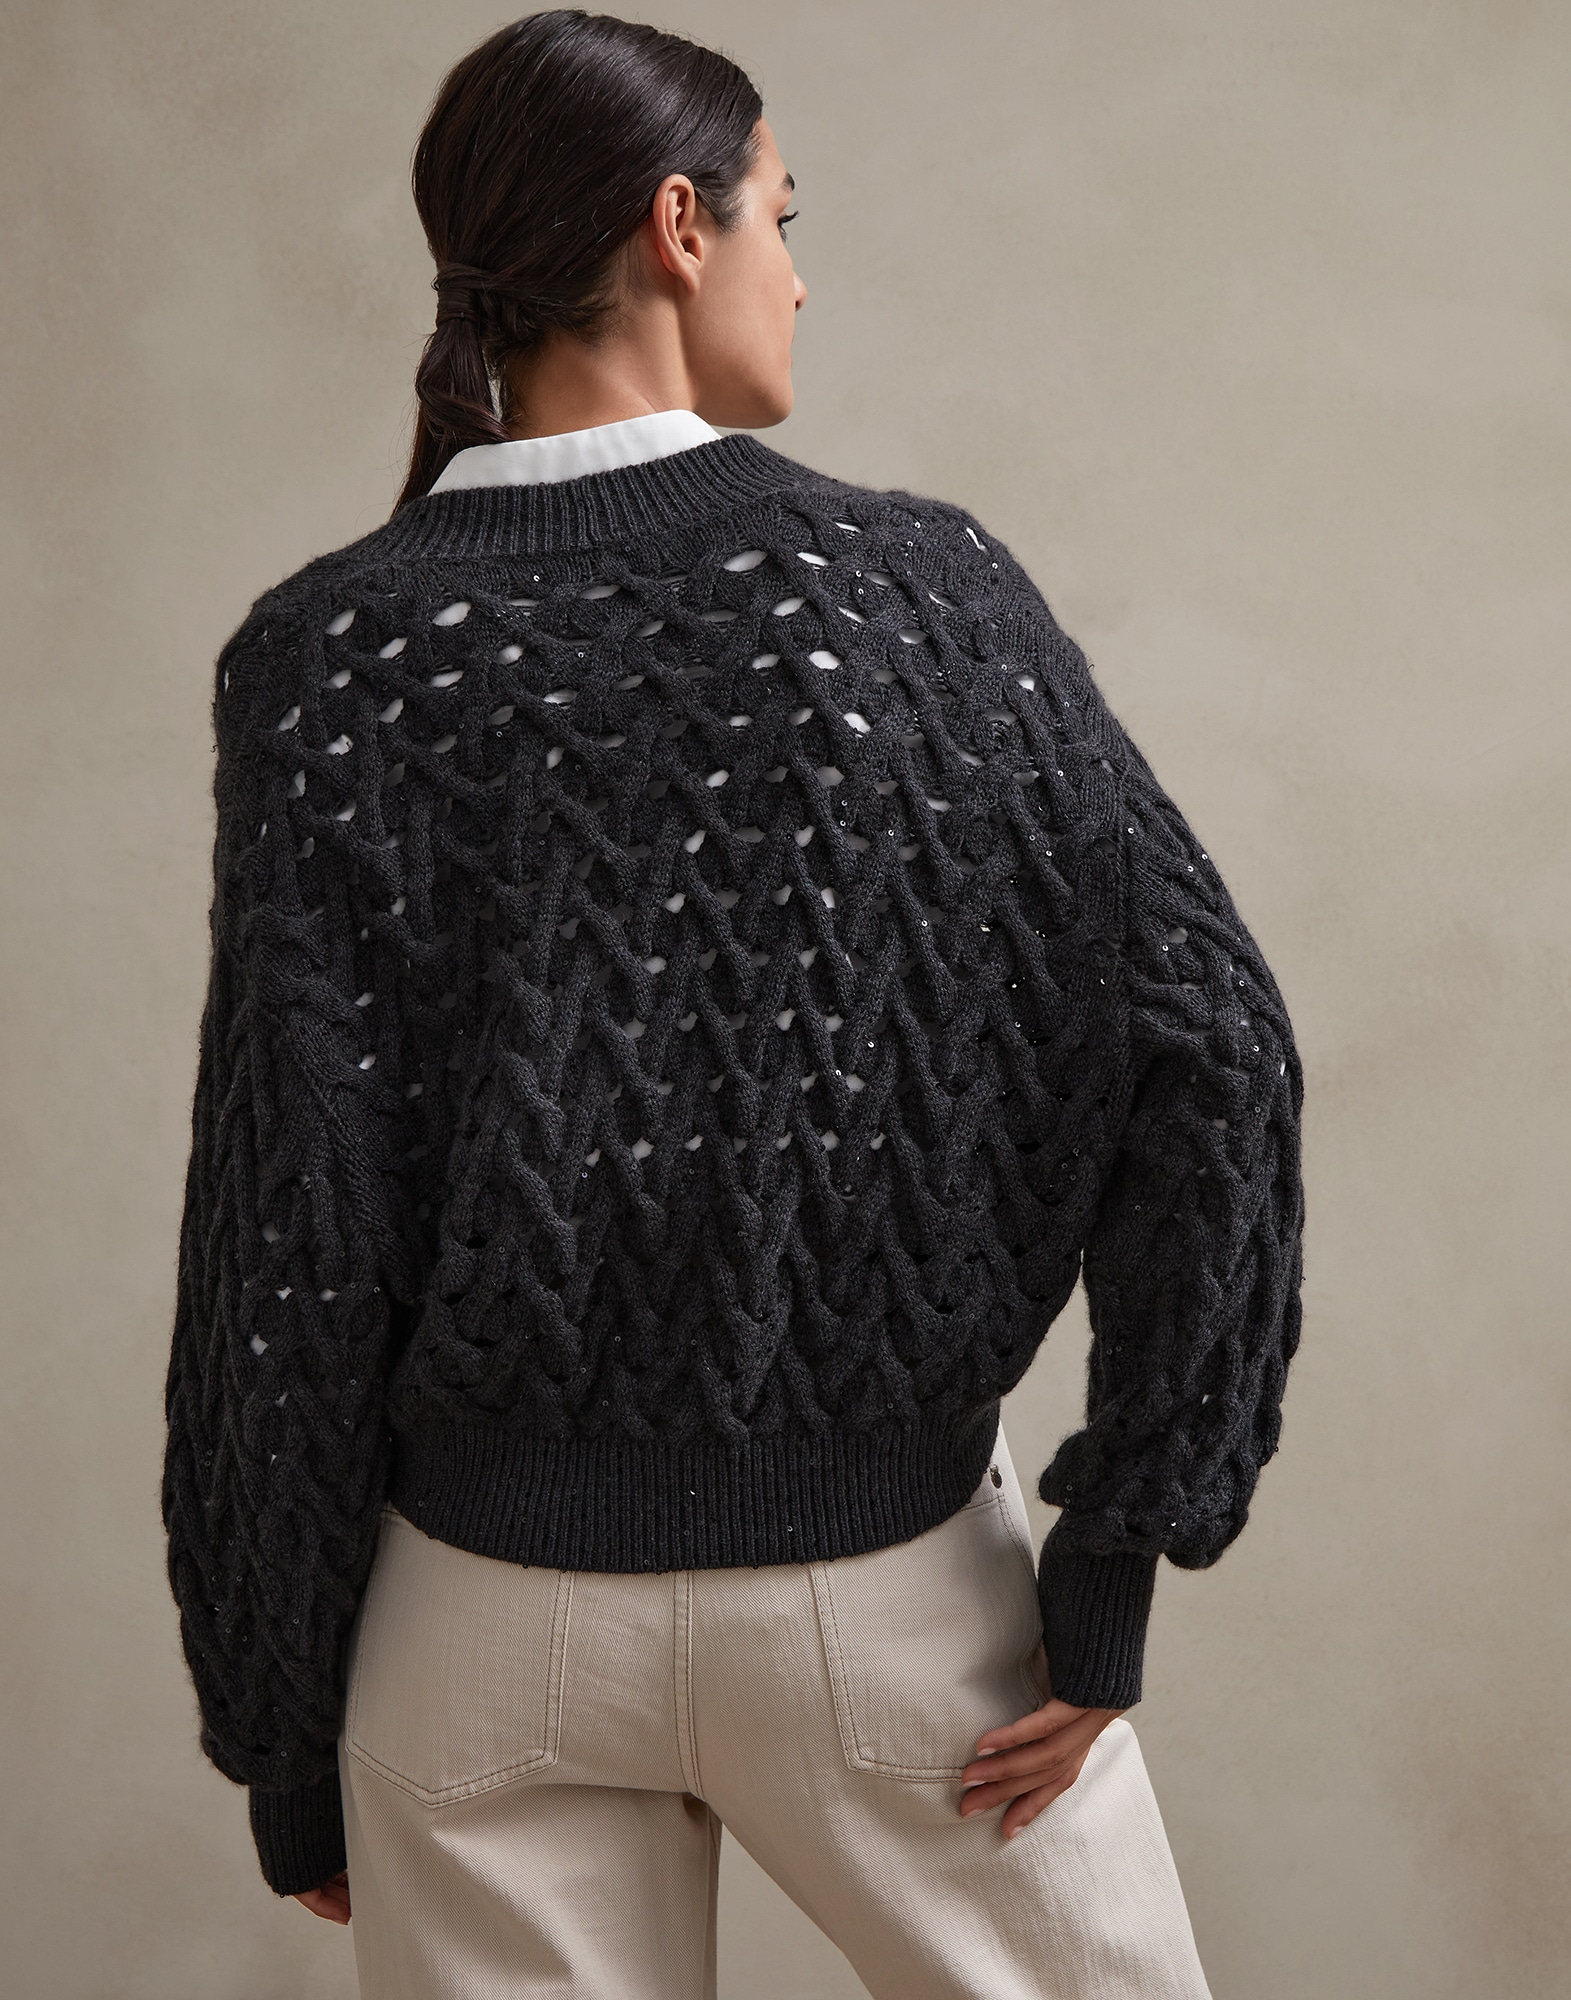 Cardigan - Back view